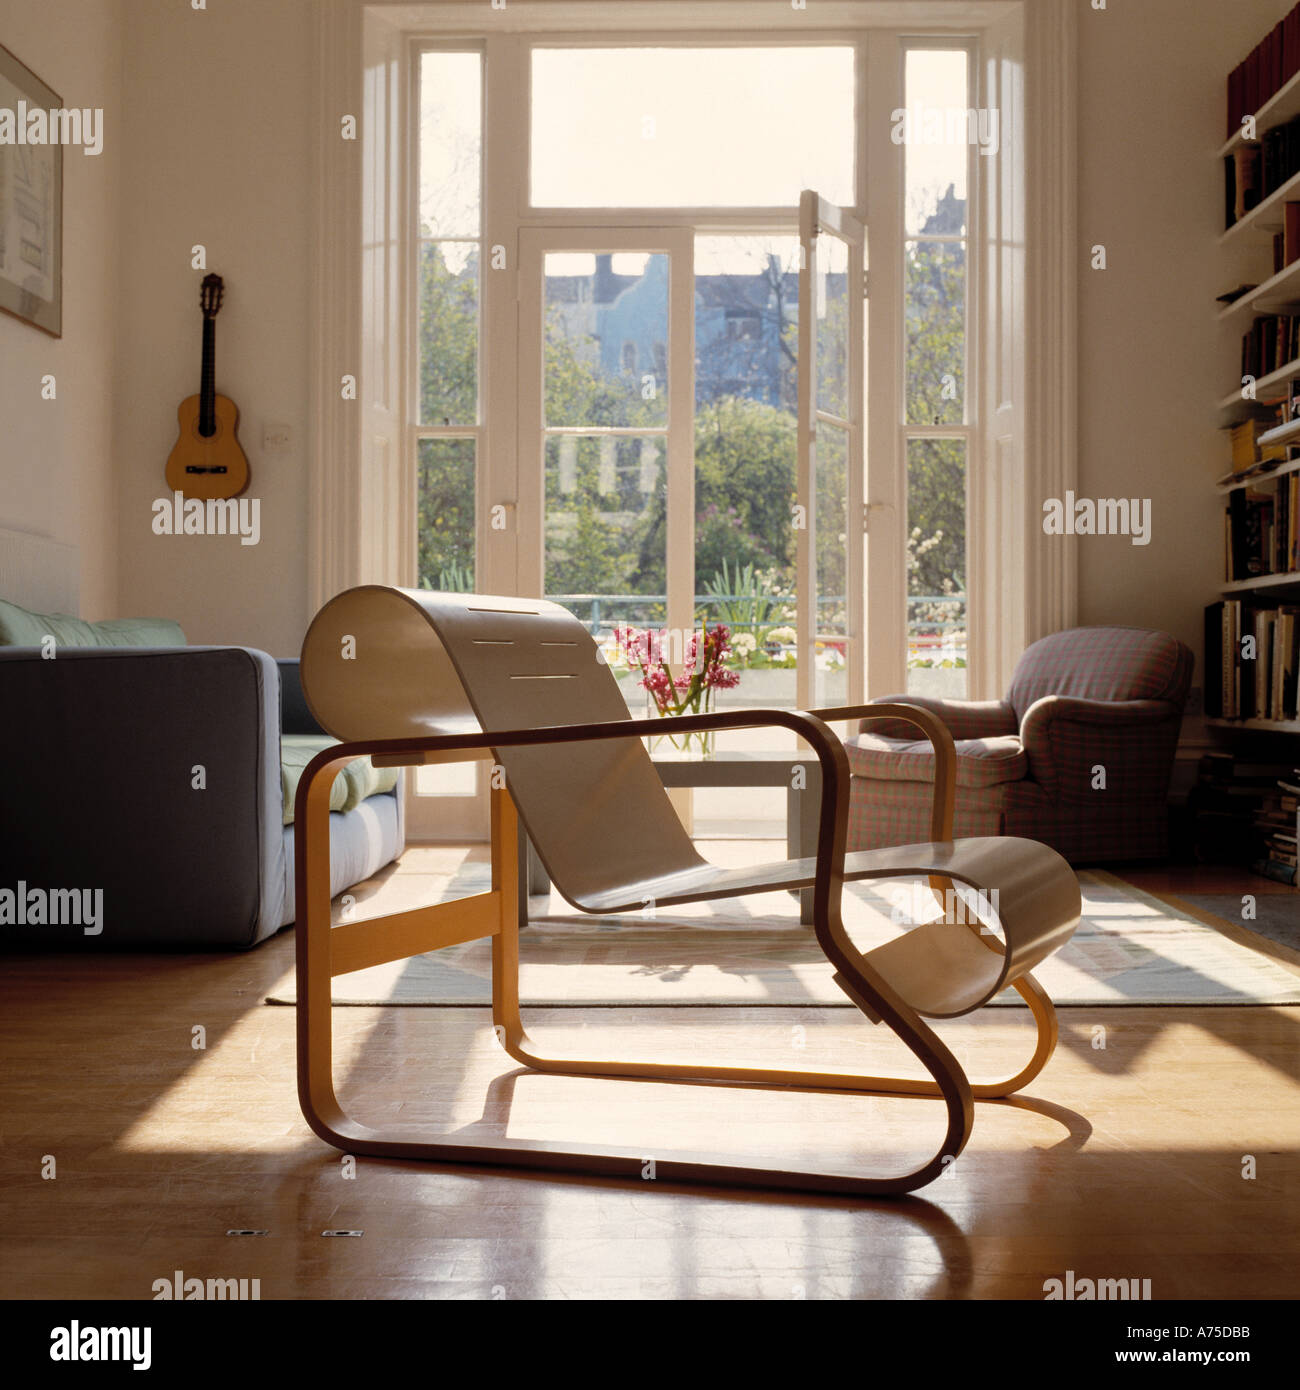 Mid Century Modern Chair In Sunlit Modern Living Room With